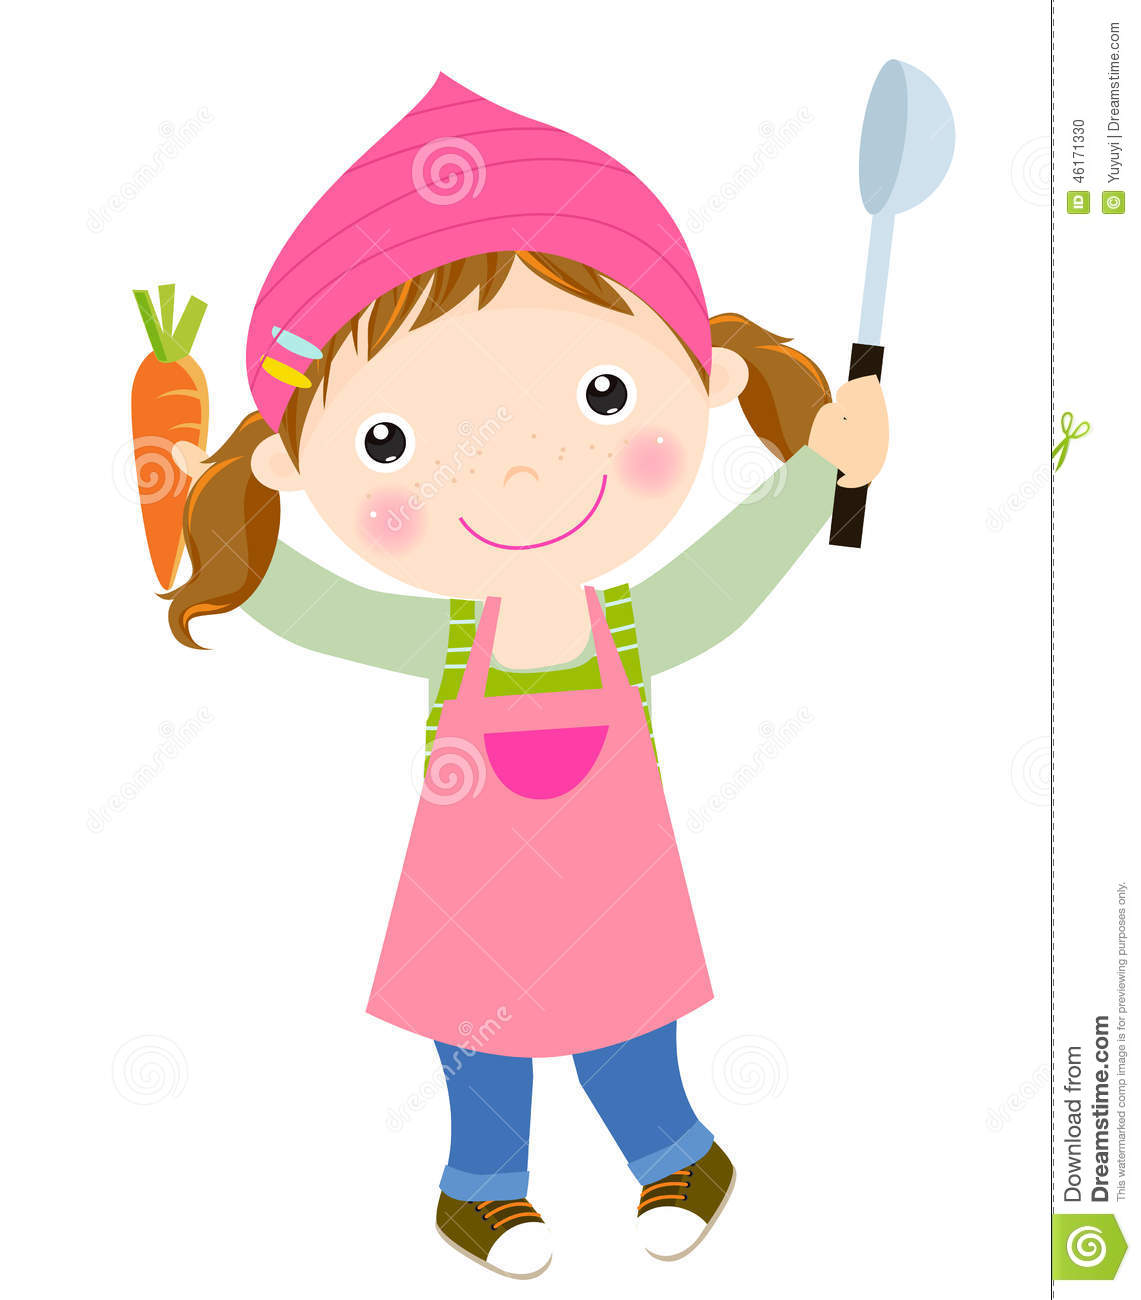 Little chef clipart picture royalty free Cute Little Chef Stock Vector - Image: 46171330 picture royalty free